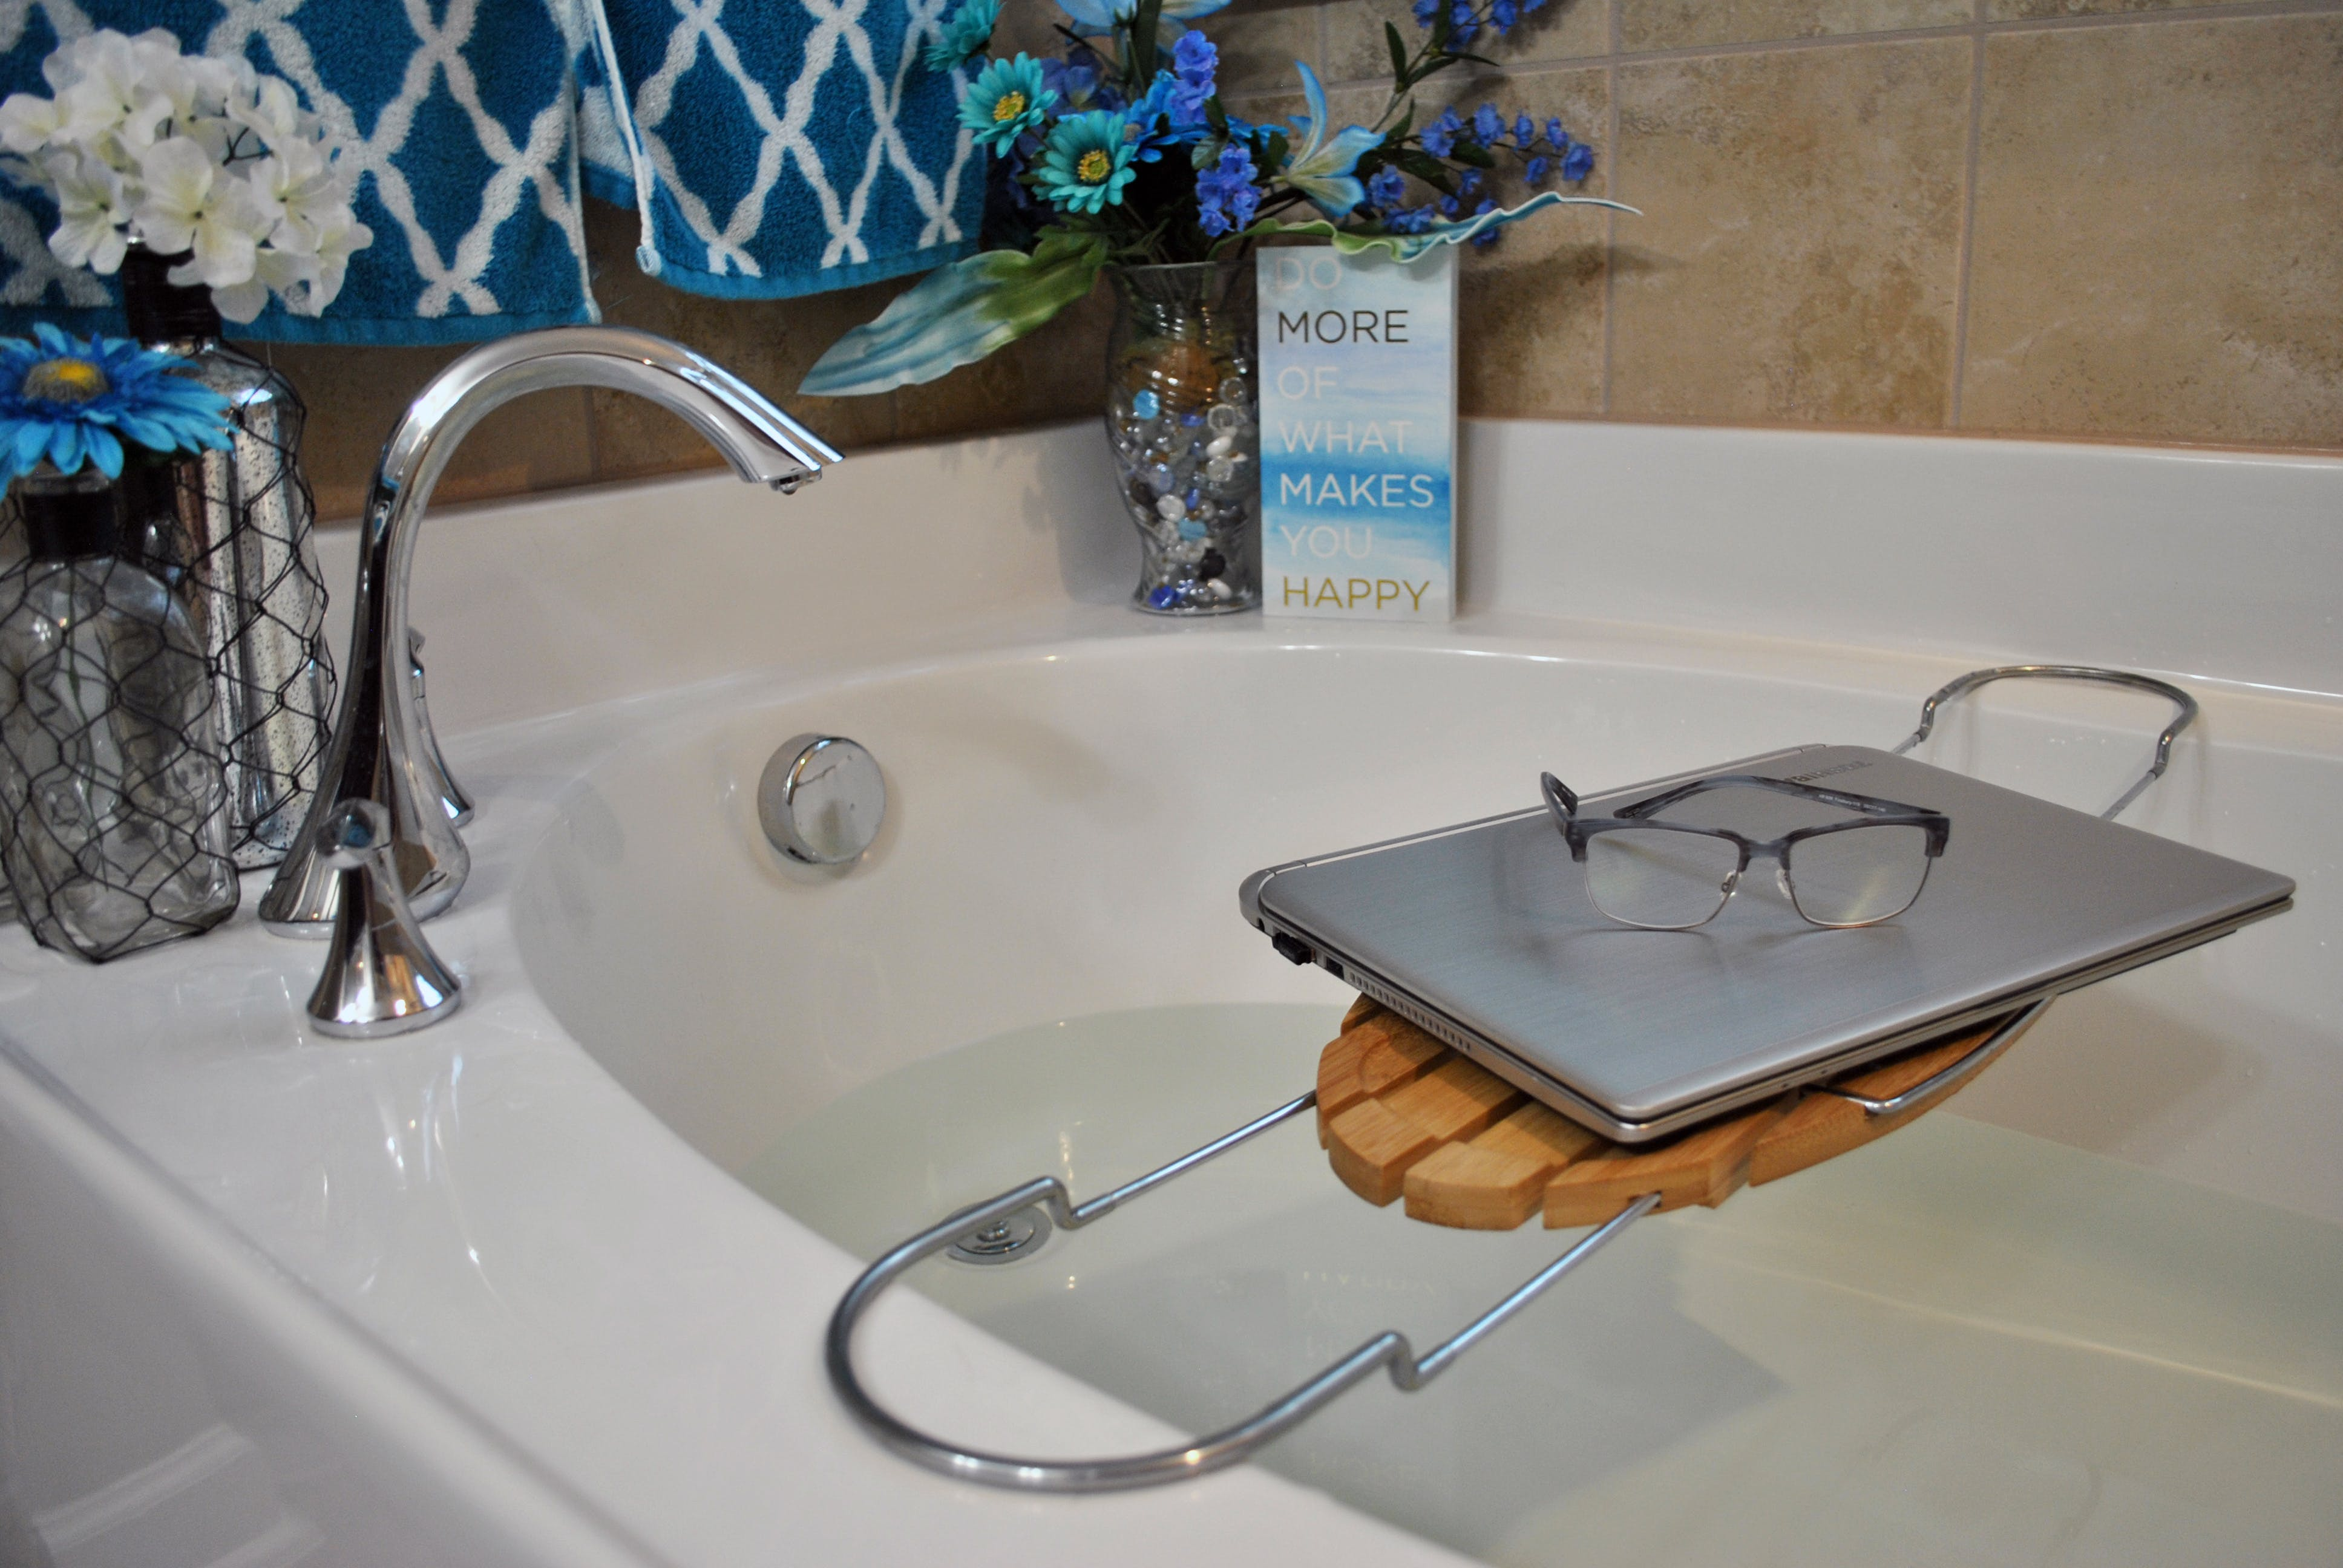 Free stock photo of water, laptop, glasses, bath